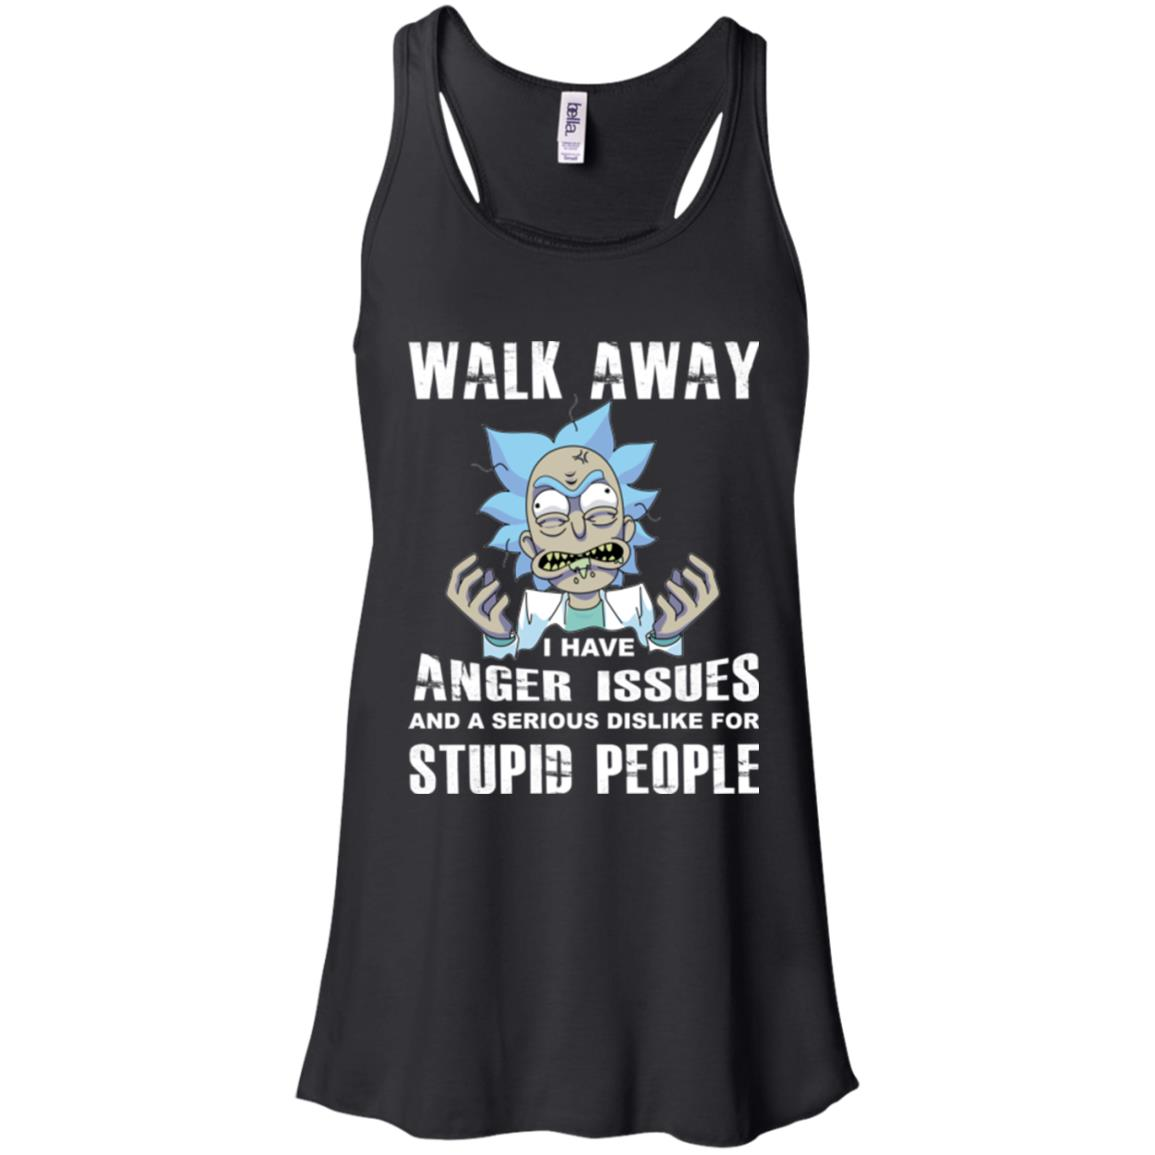 image 238px Rick and Morty: Walk away I have anger issues for stupid people t shirt